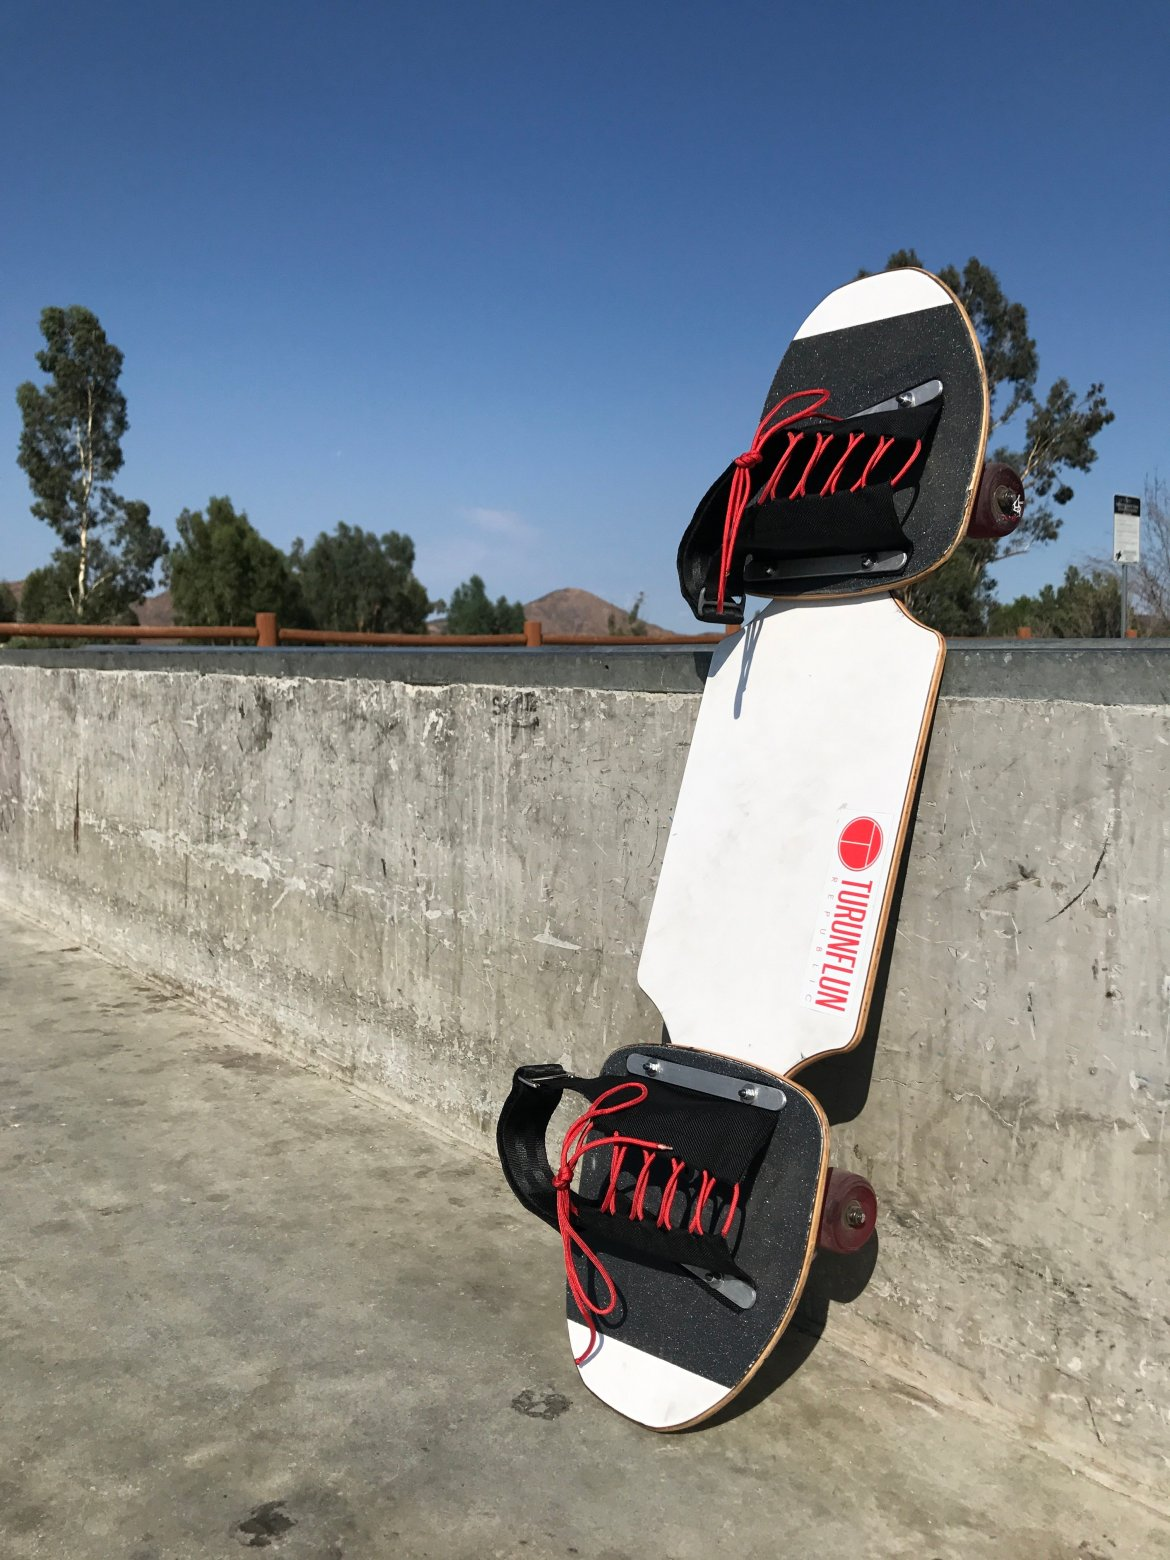 Rogue Pivotboards Third Wave Elite Complete - Ready-to-Ride Pivotboard with Ballistic Bindings